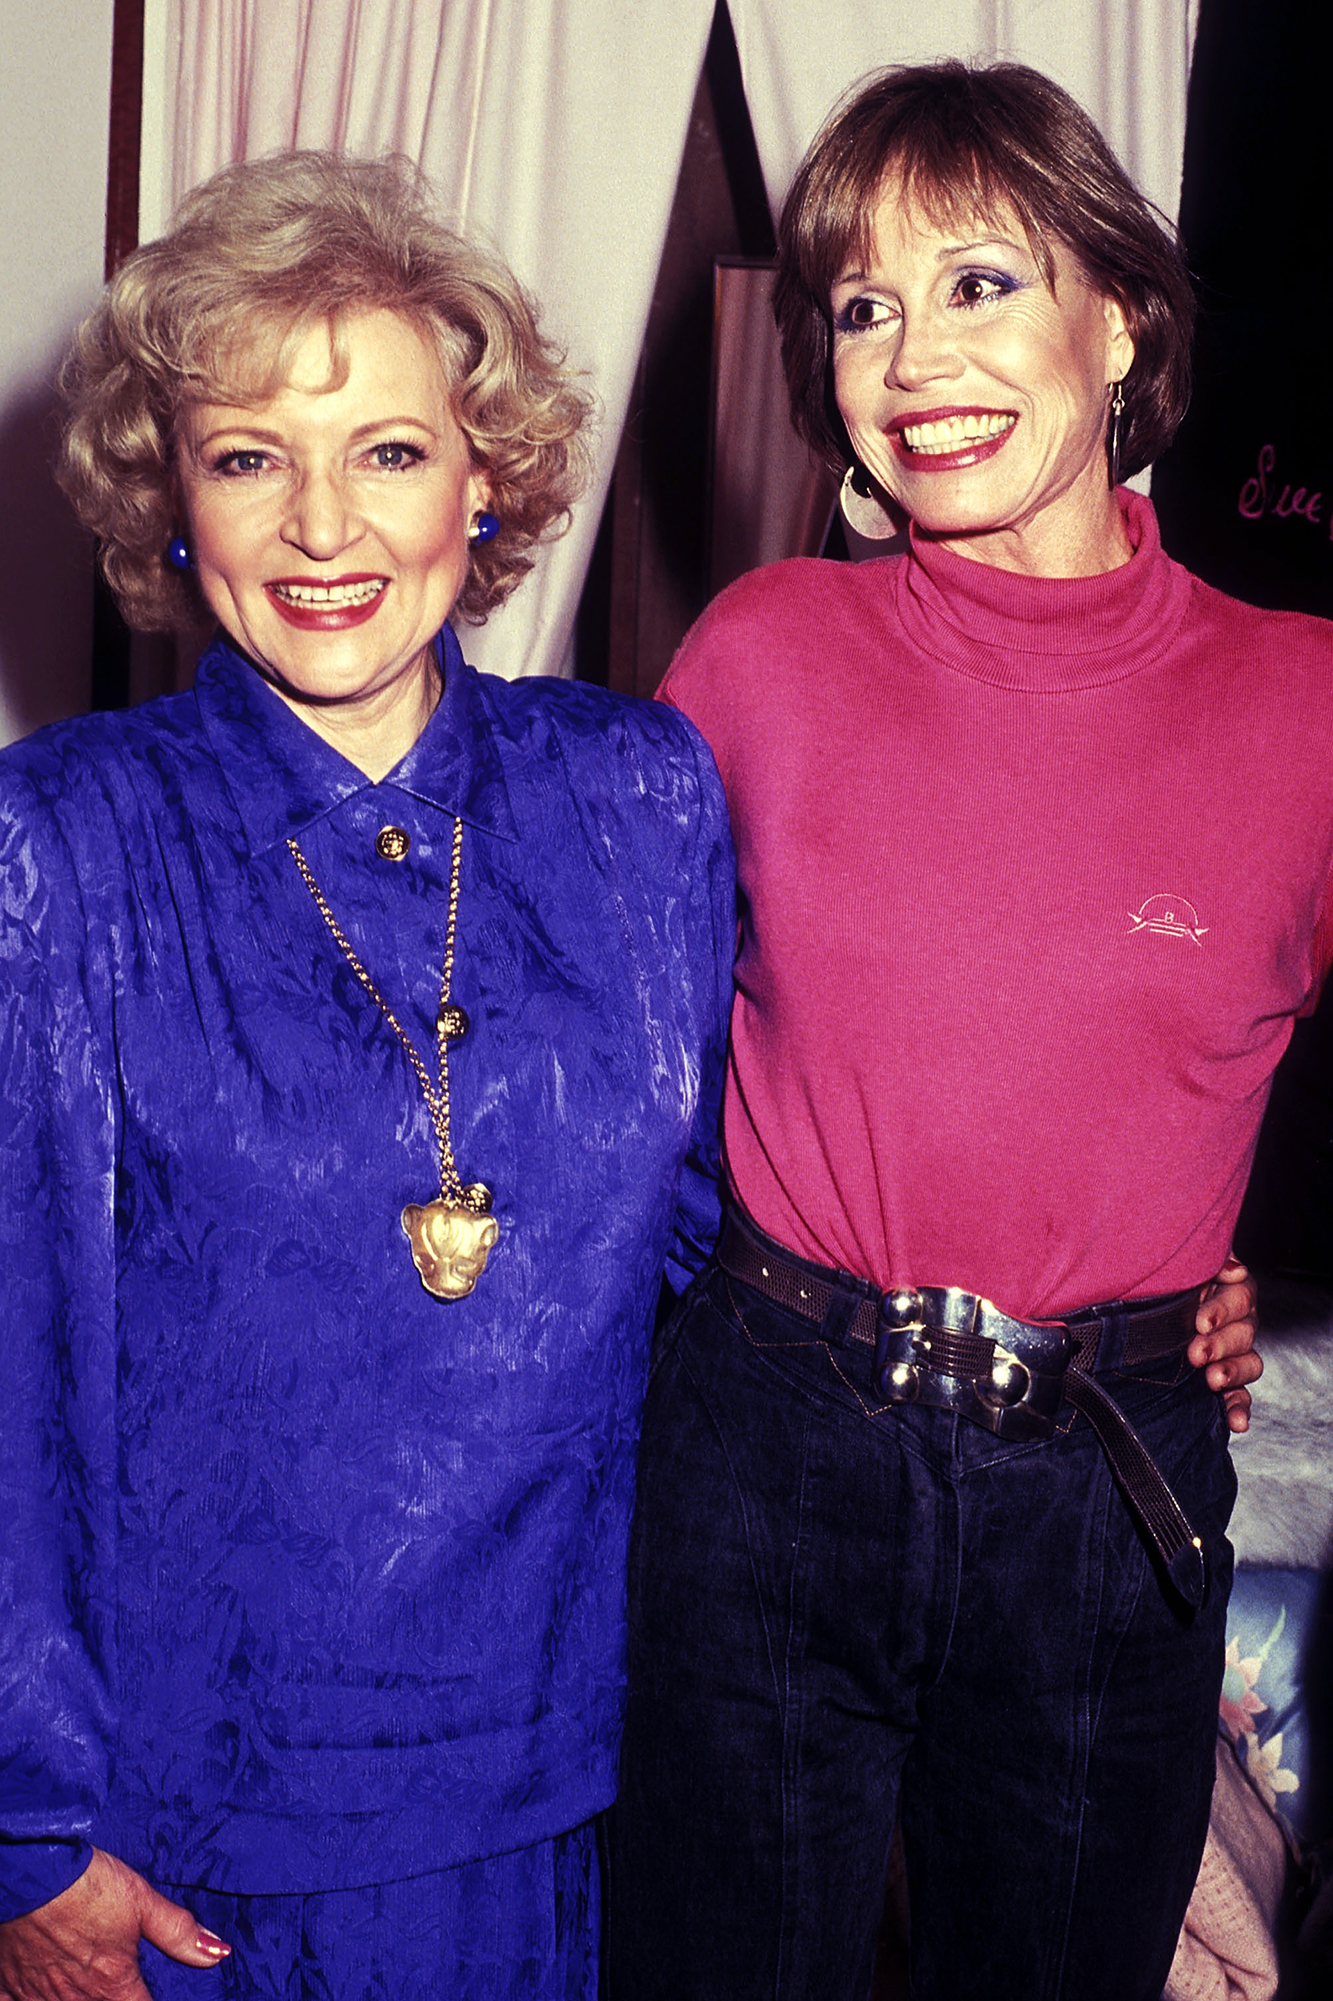 Betty White and Mary Tyler Moore, on Feb. 3, 1987 in New York City.